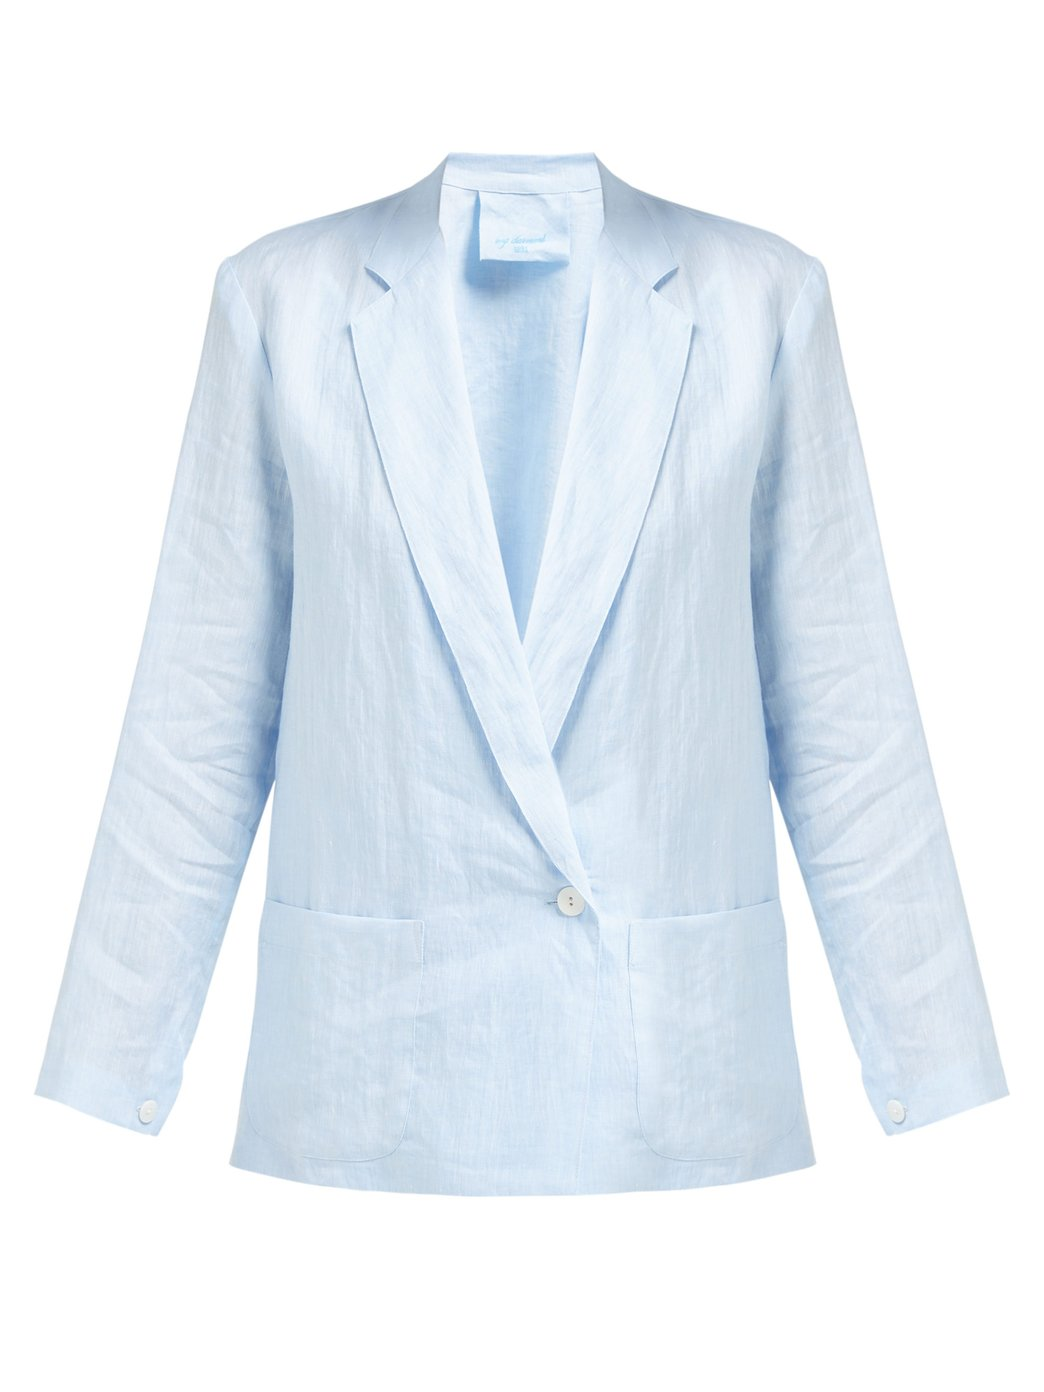 Loup Charmant Saint-Denis Blazer in Baby Blue